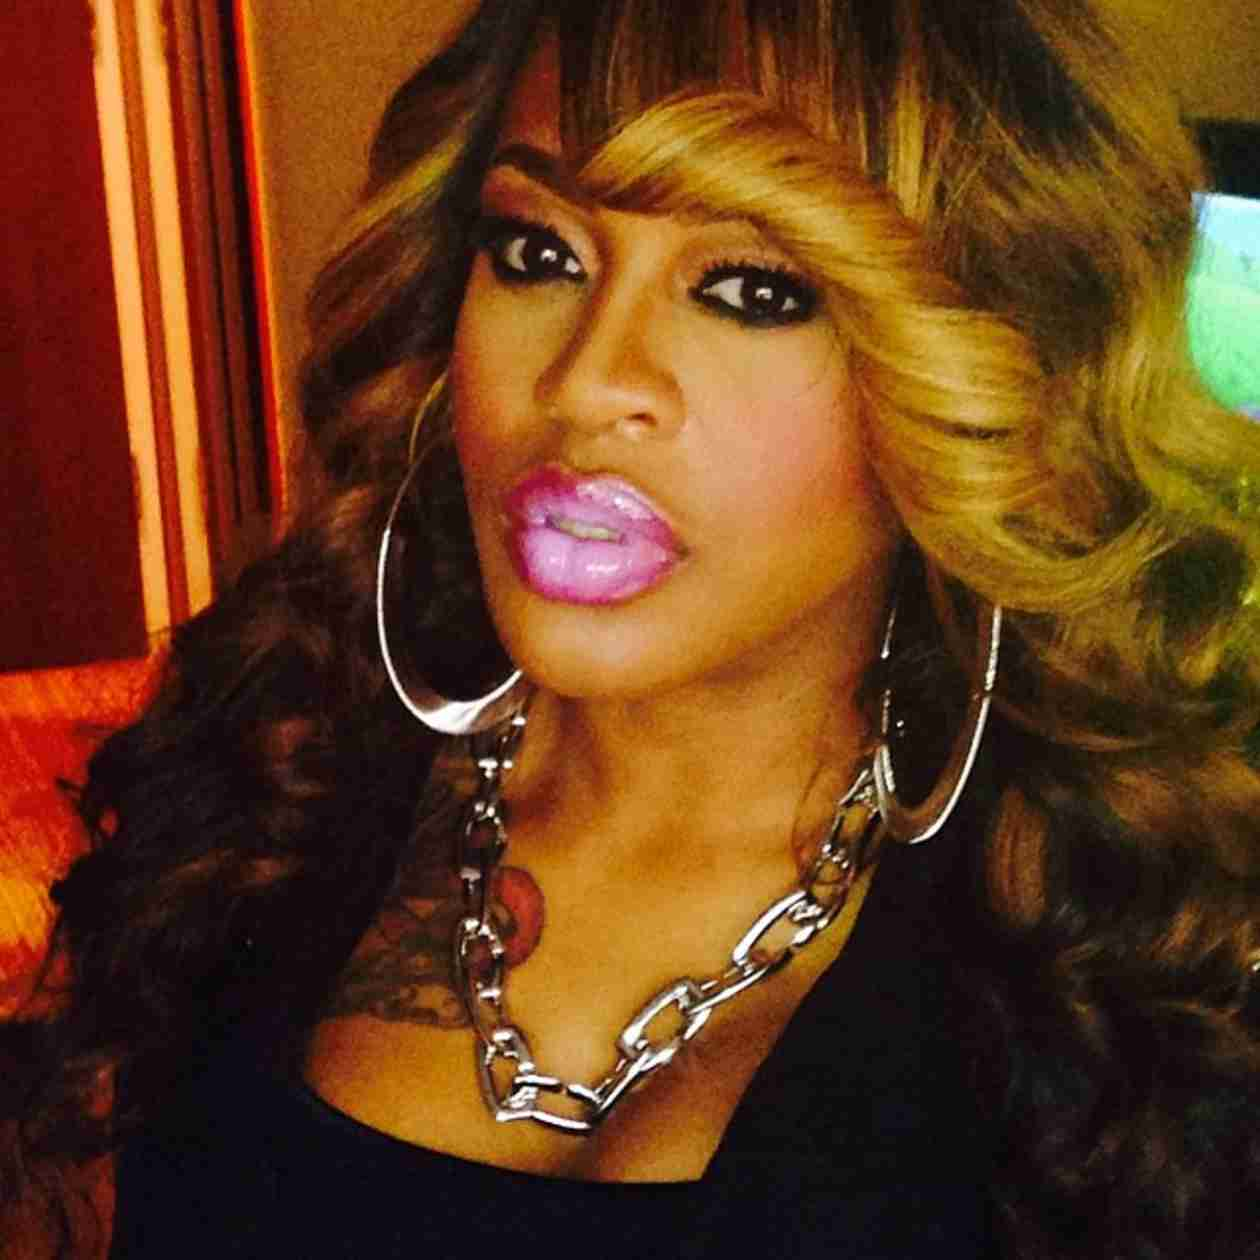 Lil' Mo Addresses Catfish Episode Exposing 'Estranged' Stepson as Con Artist